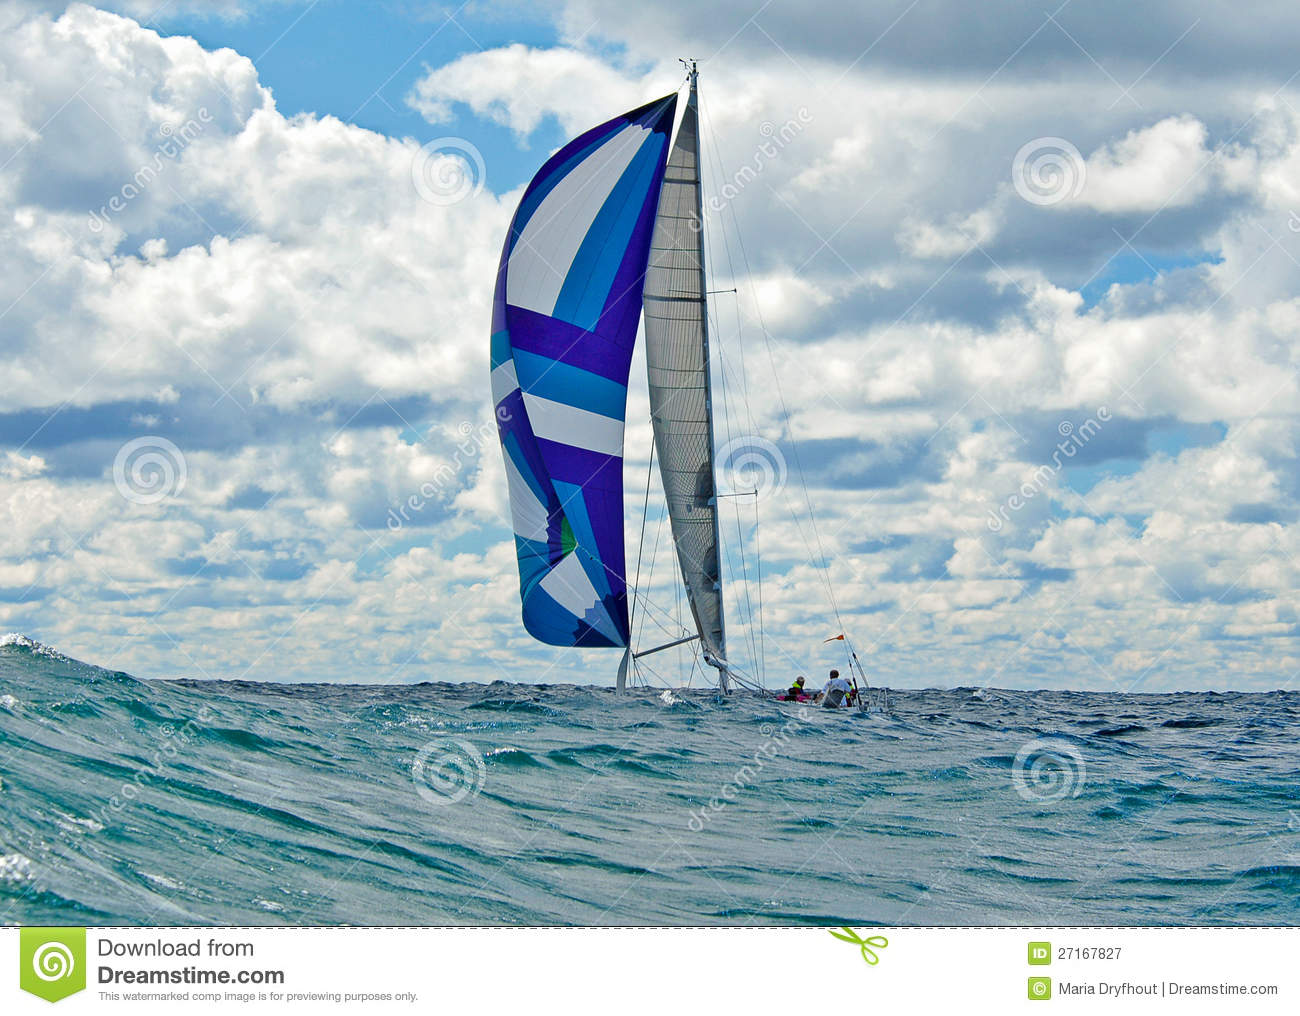 Sailing With A Colorful Spinnaker Royalty Free Stock Photography - Image: 27167827